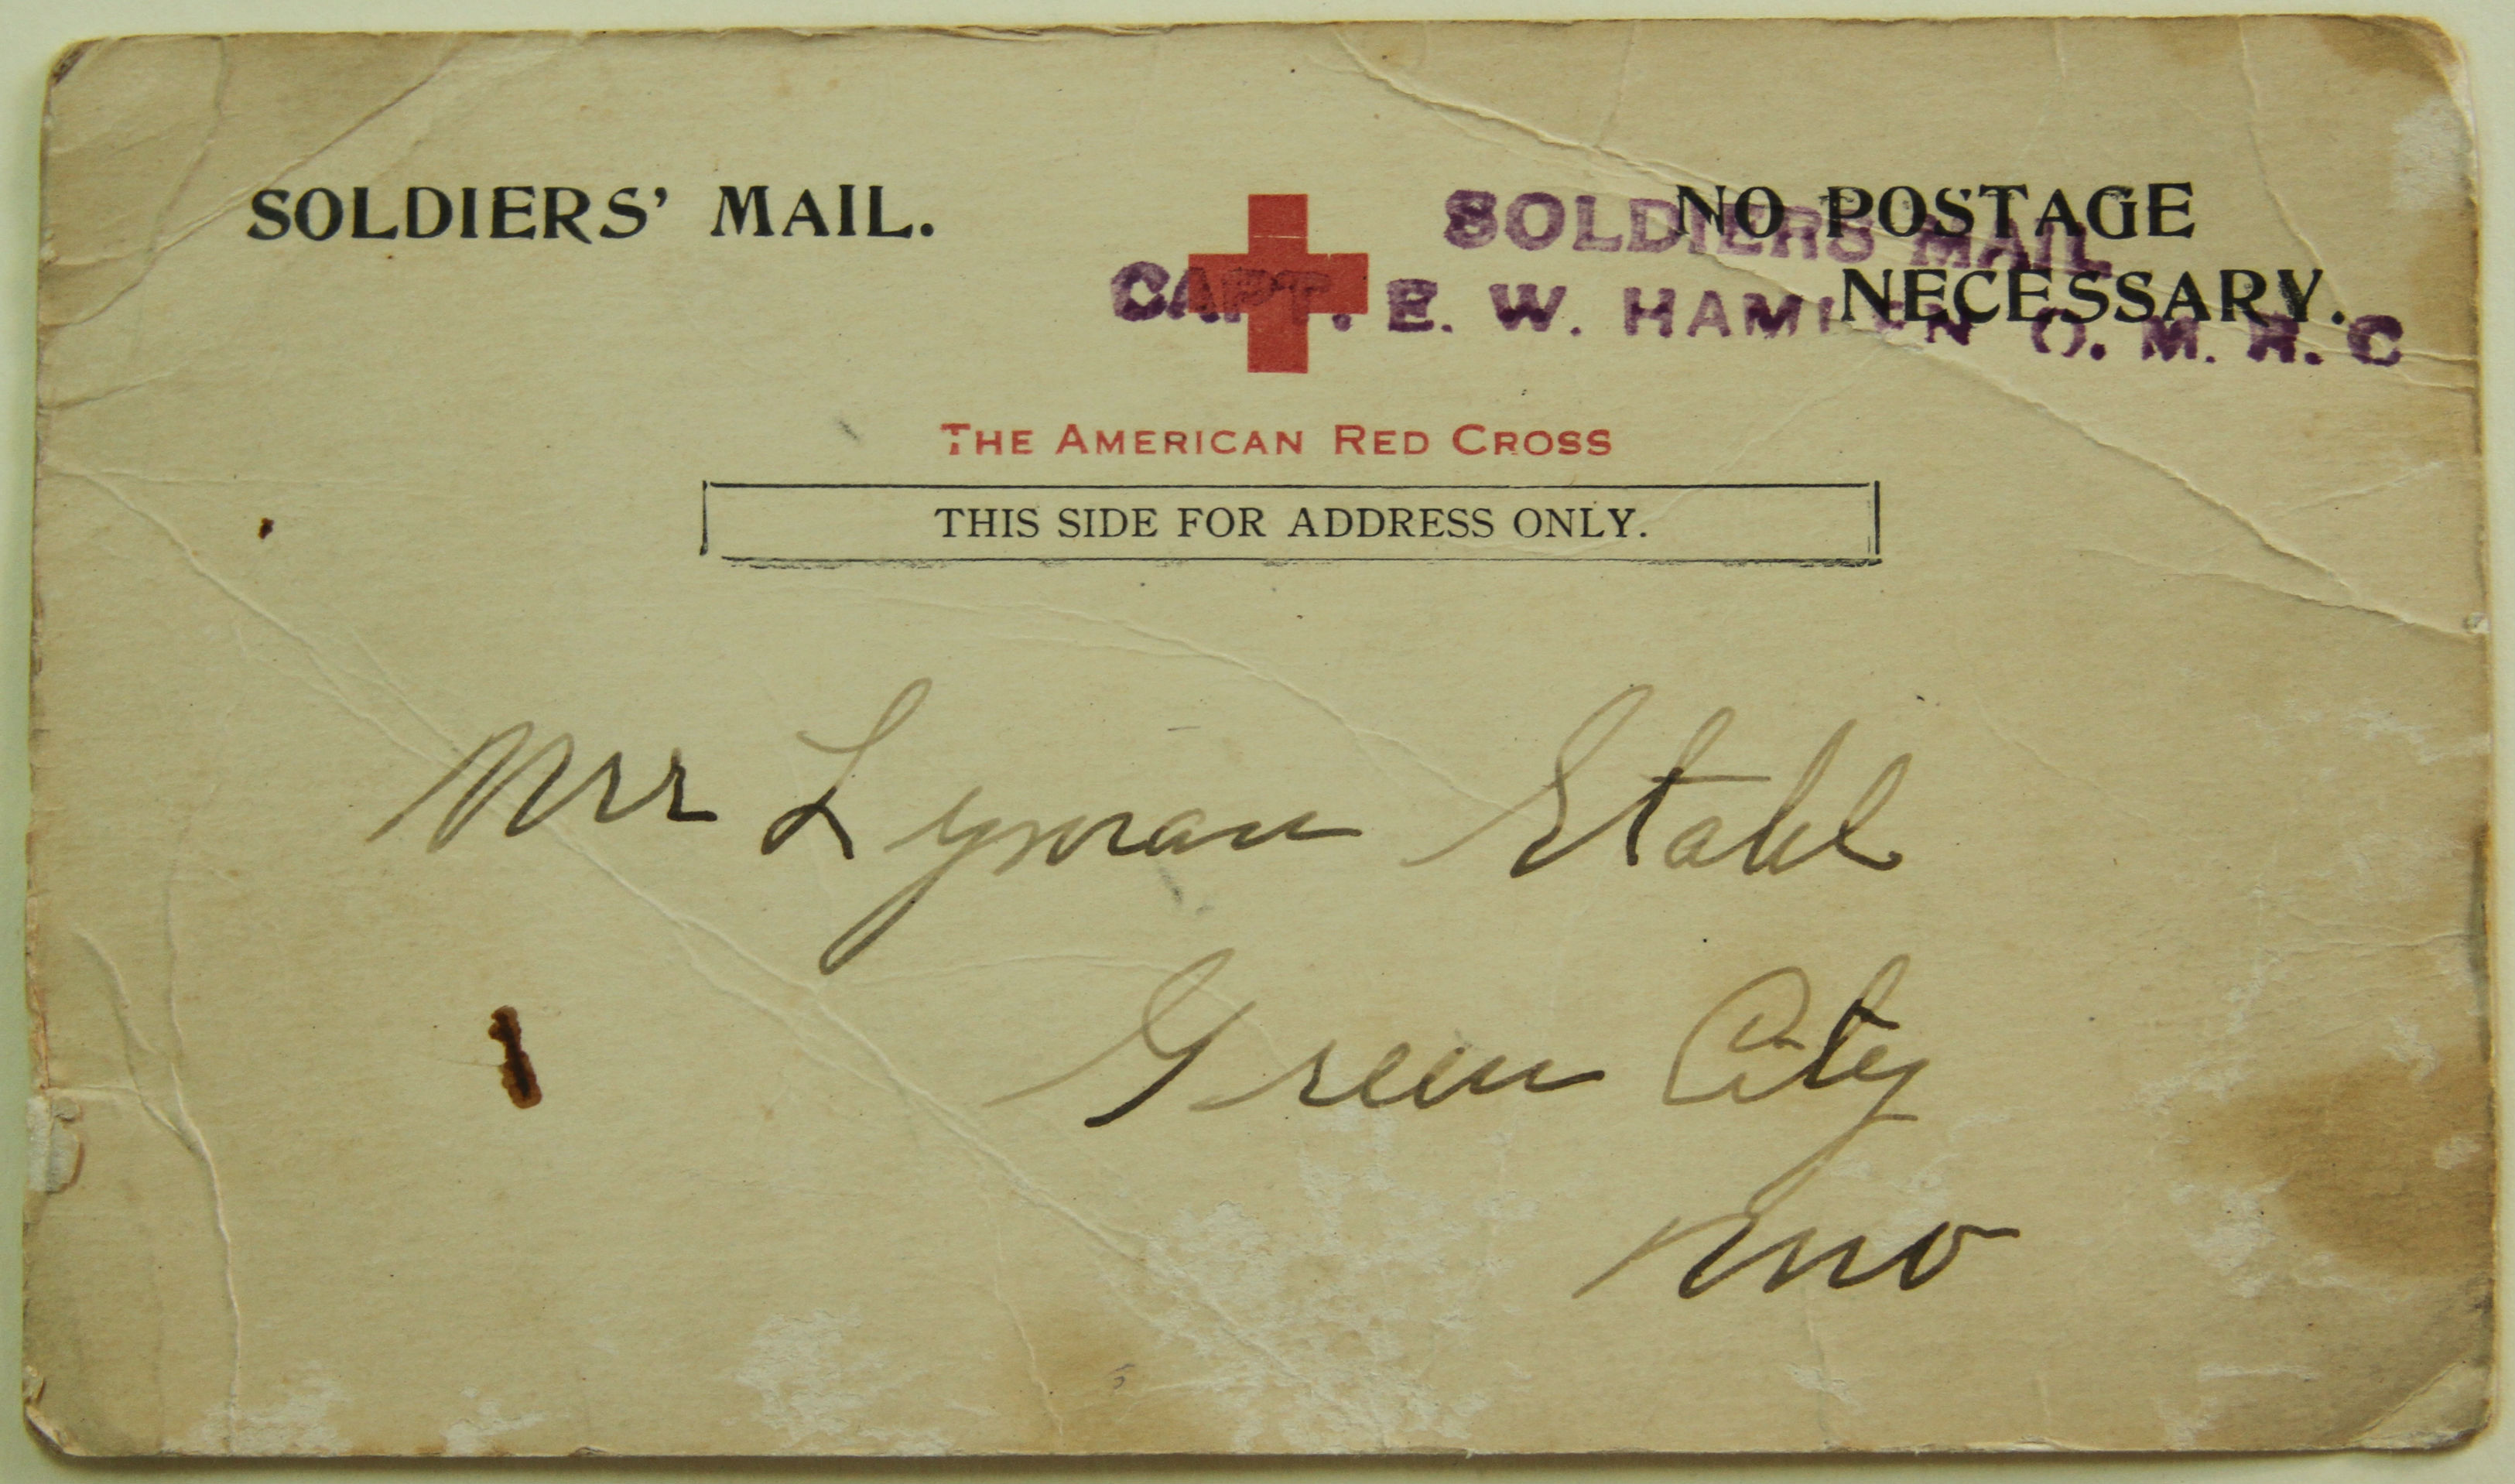 Postcard to Lyman Stahl, Back, Earl L. Stahl Collection, Courtesy of Craig Bowers.